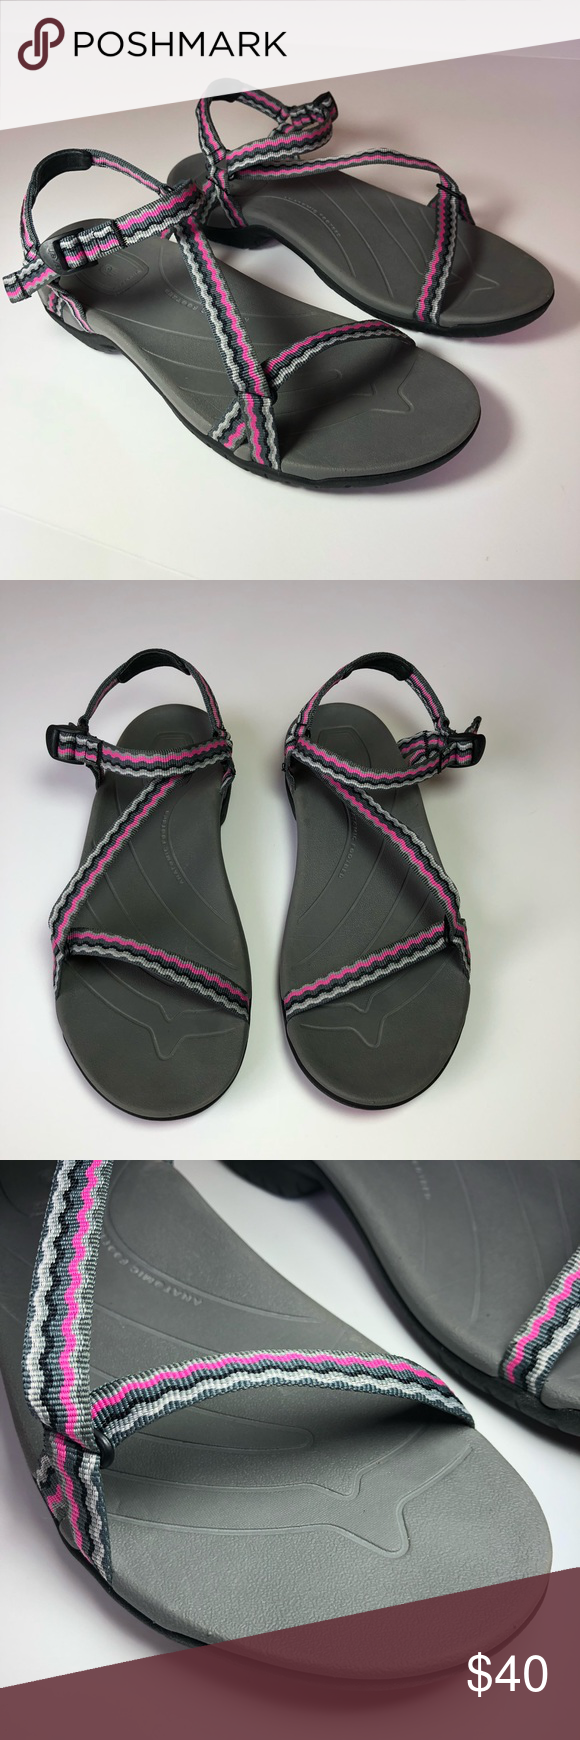 fdd836d3488d1 TEVA Anatomic Footbed Thin Strap Hiking Sandals In incredible condition.  Perfect for spring and summer